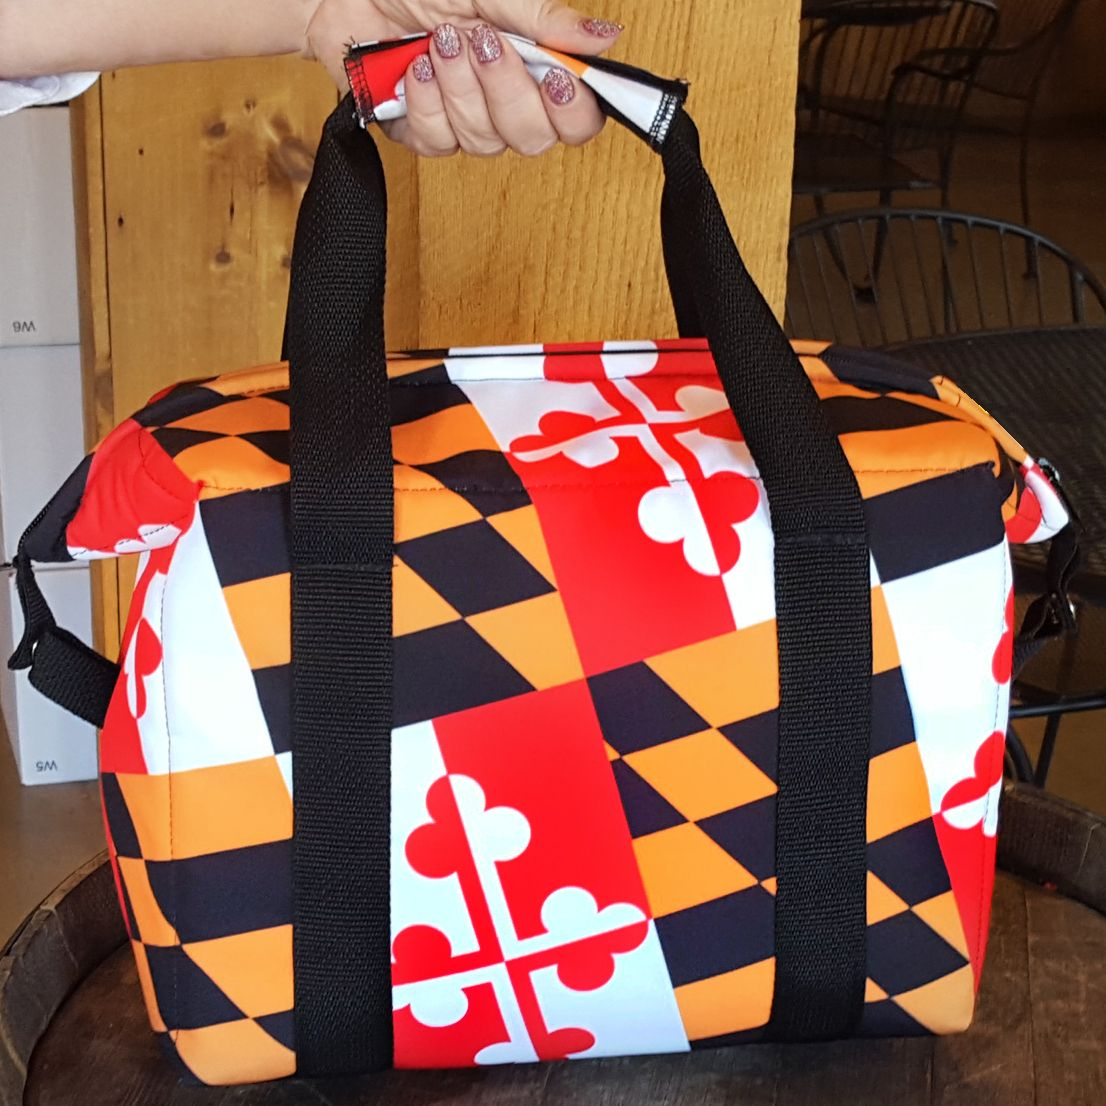 Maryland Flag Insulated Cooler Bag Http Www Wineandbarware Com Maryland Flag Insulated Cooler Bag P 304 Html Cooler Bag Bags Maryland Flag